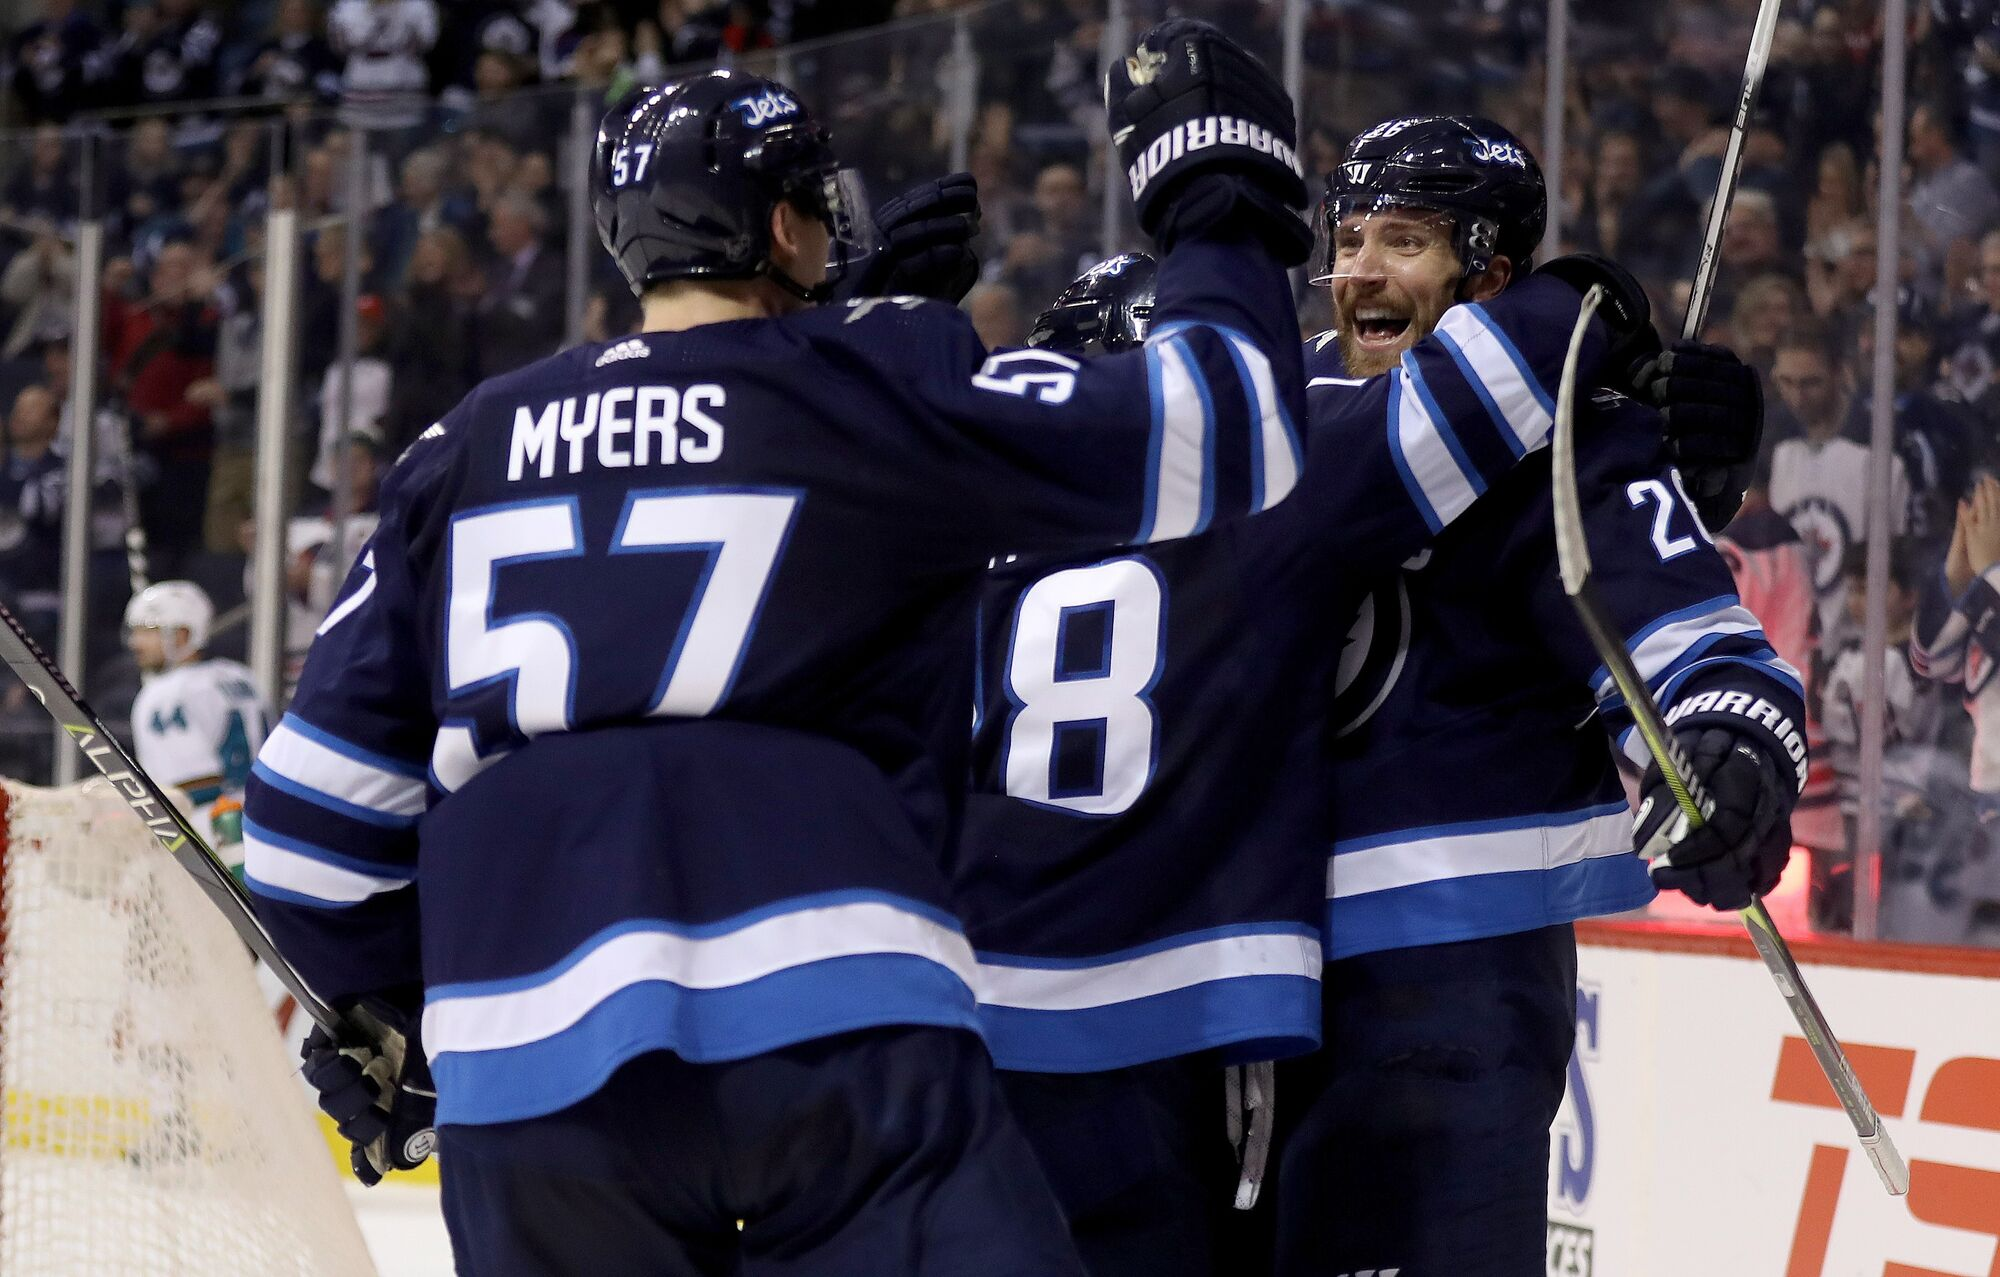 Jets cruise past slumping Sabres